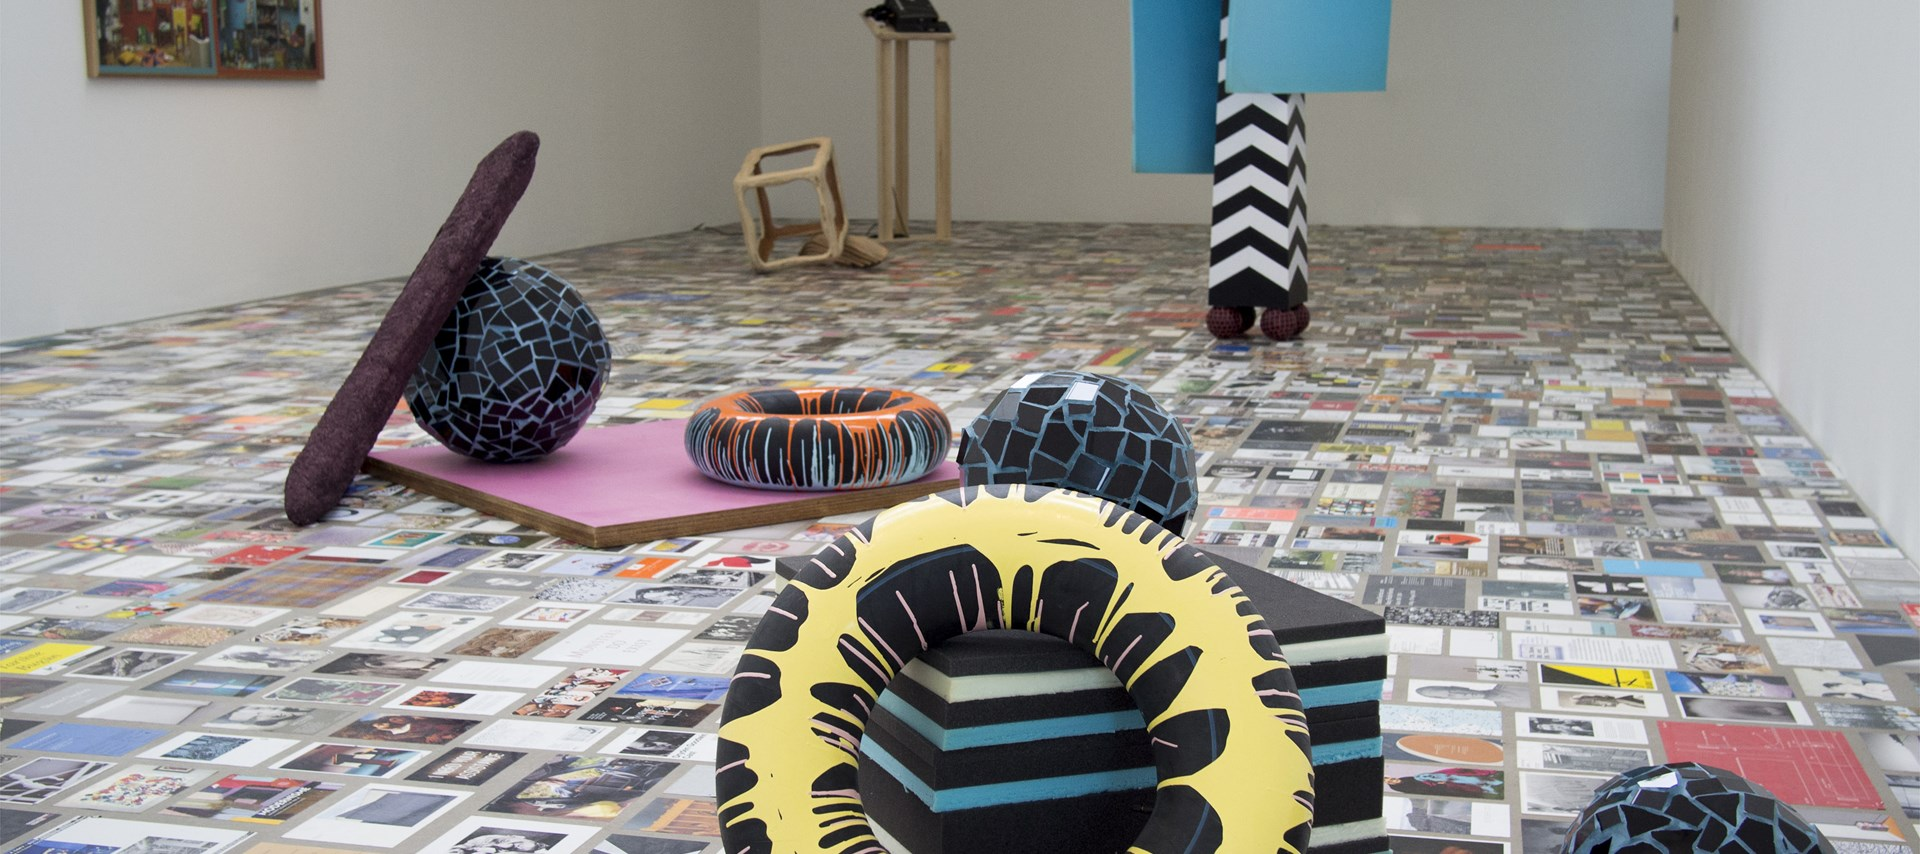 SWITCH: Selected by Phyllida Barlow: Exhibition Image by Mark Pinder © Pinder